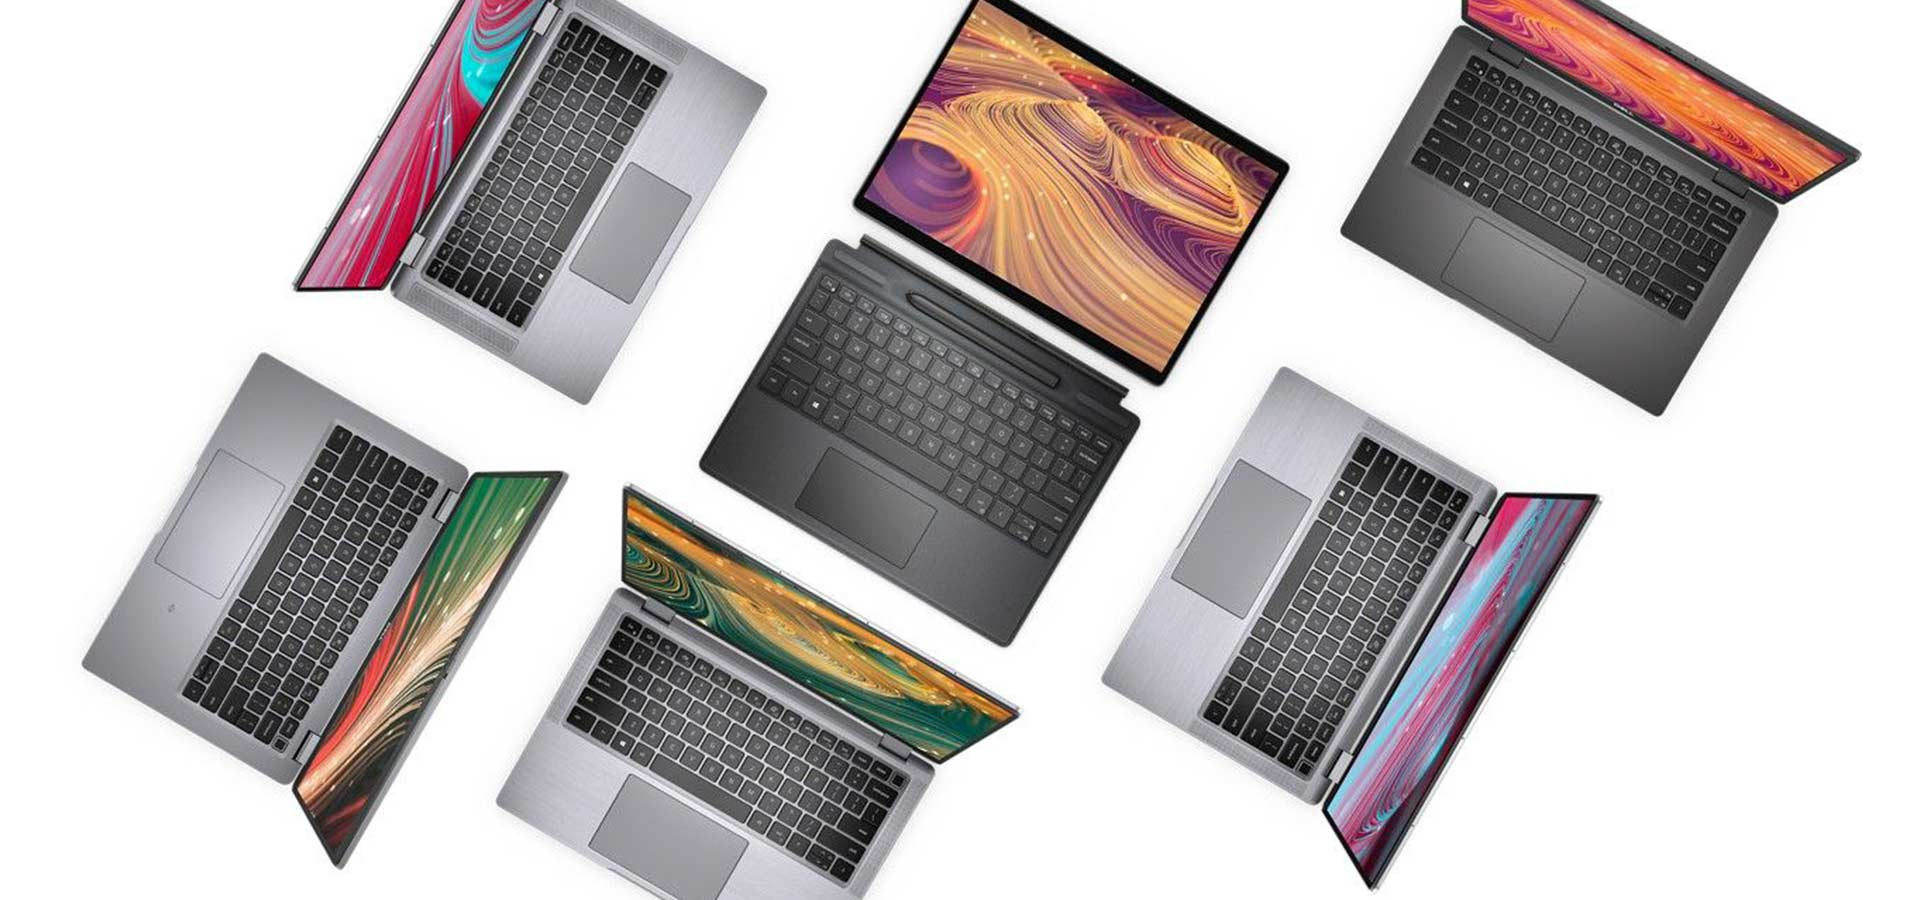 Dell laptops - the right machines for any job